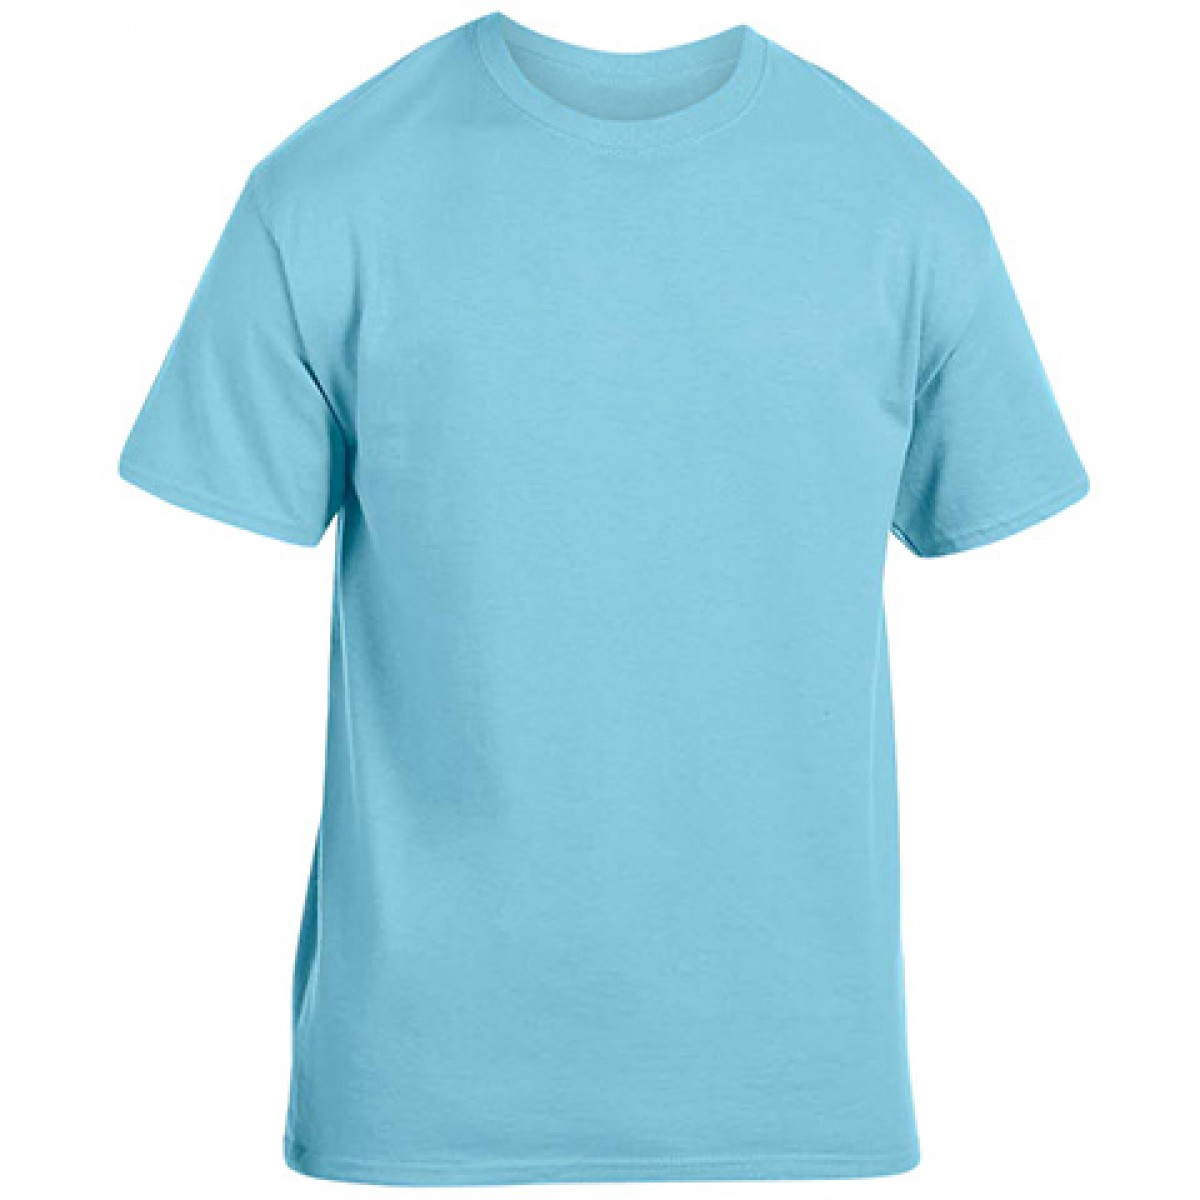 Soft 100% Cotton T-Shirt-Sky Blue-XL